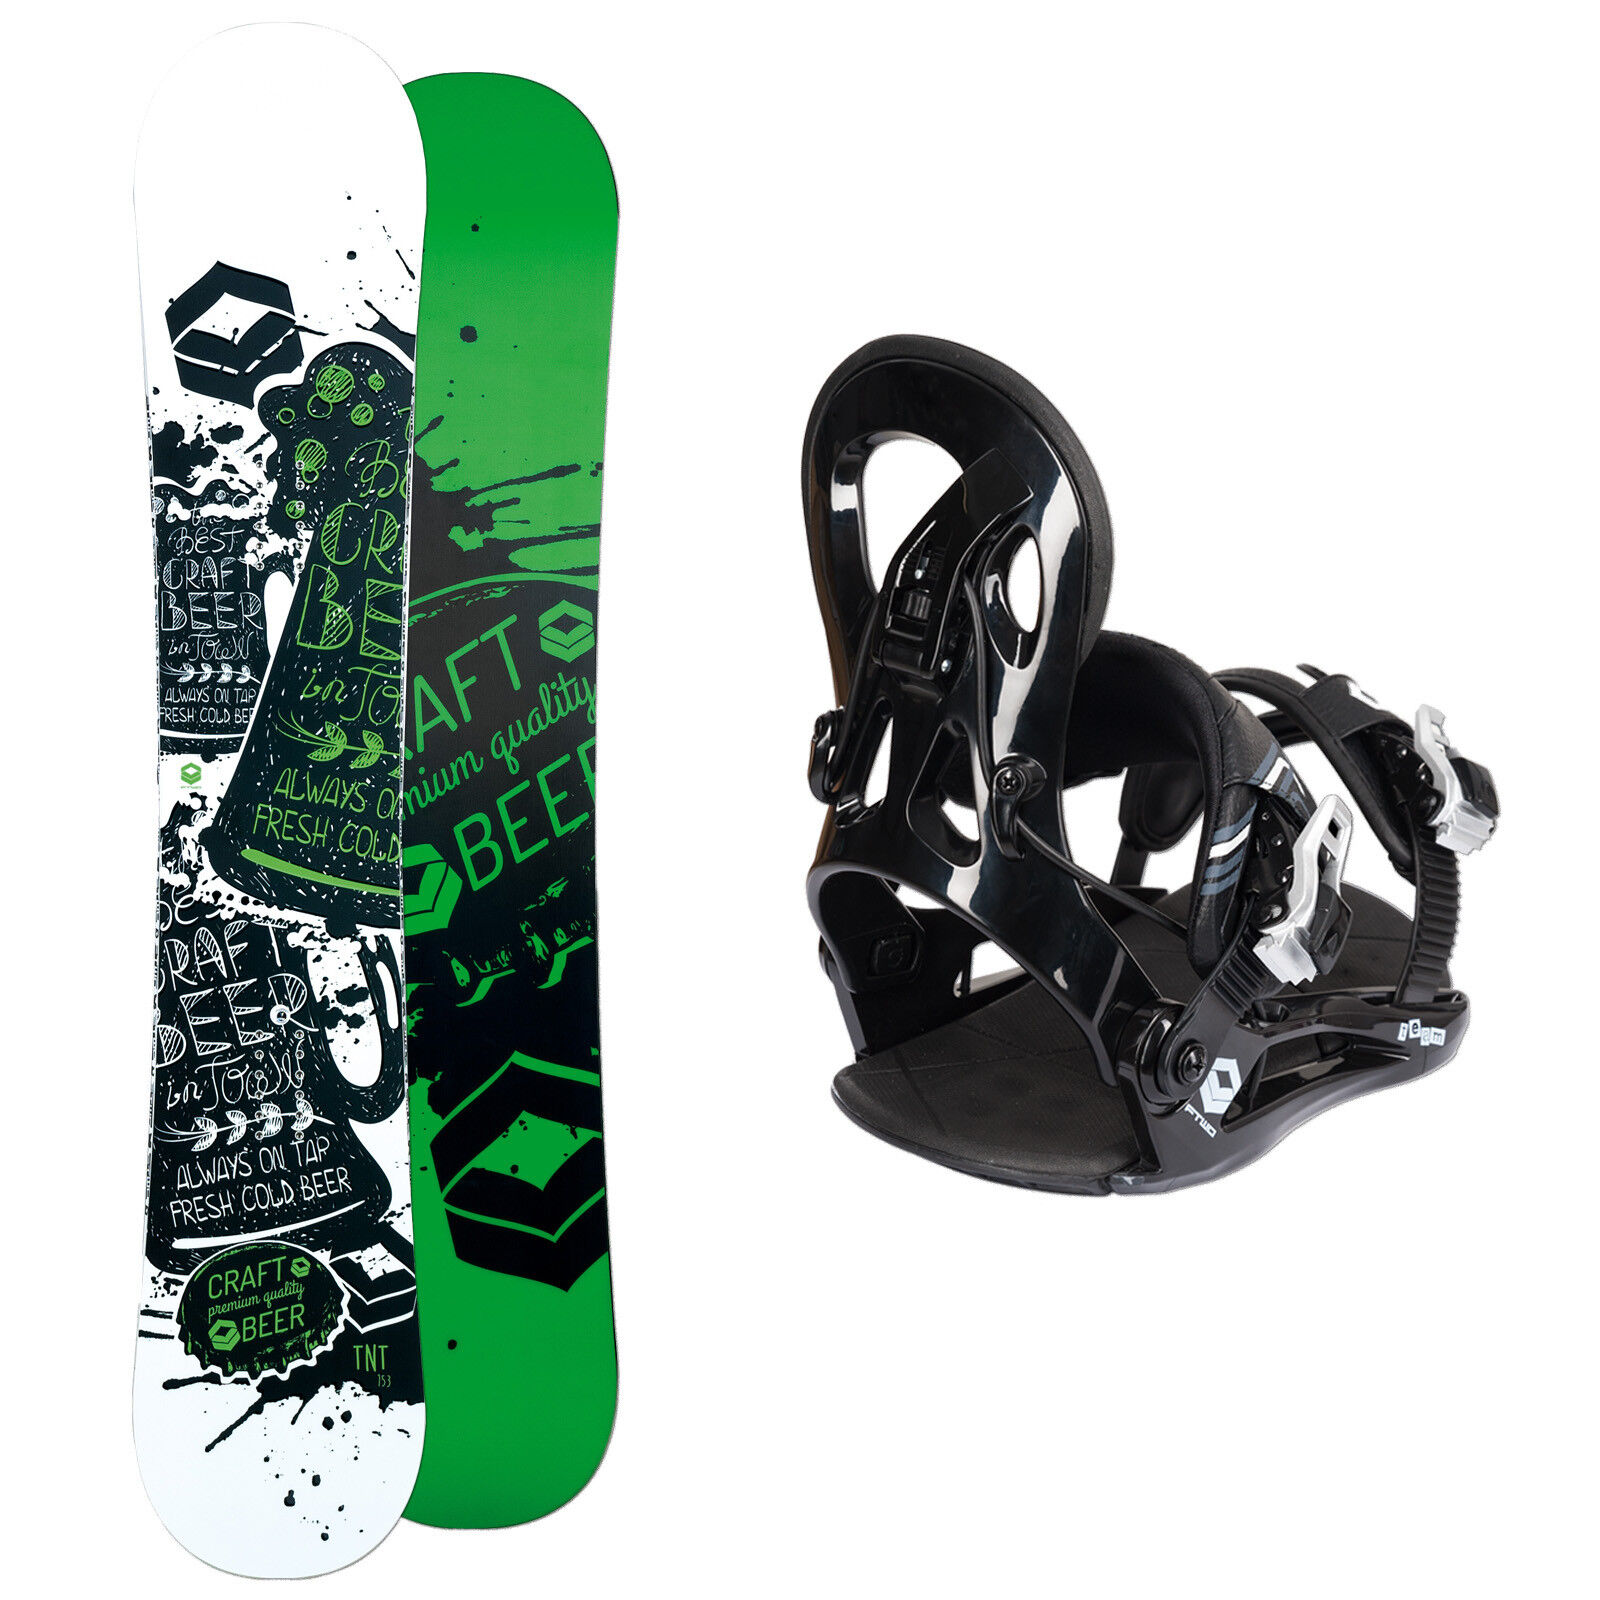 Men's Snowboard Ftwo Tnt Green 138 cm + Ftwo Team Fastec Binding SIZE M